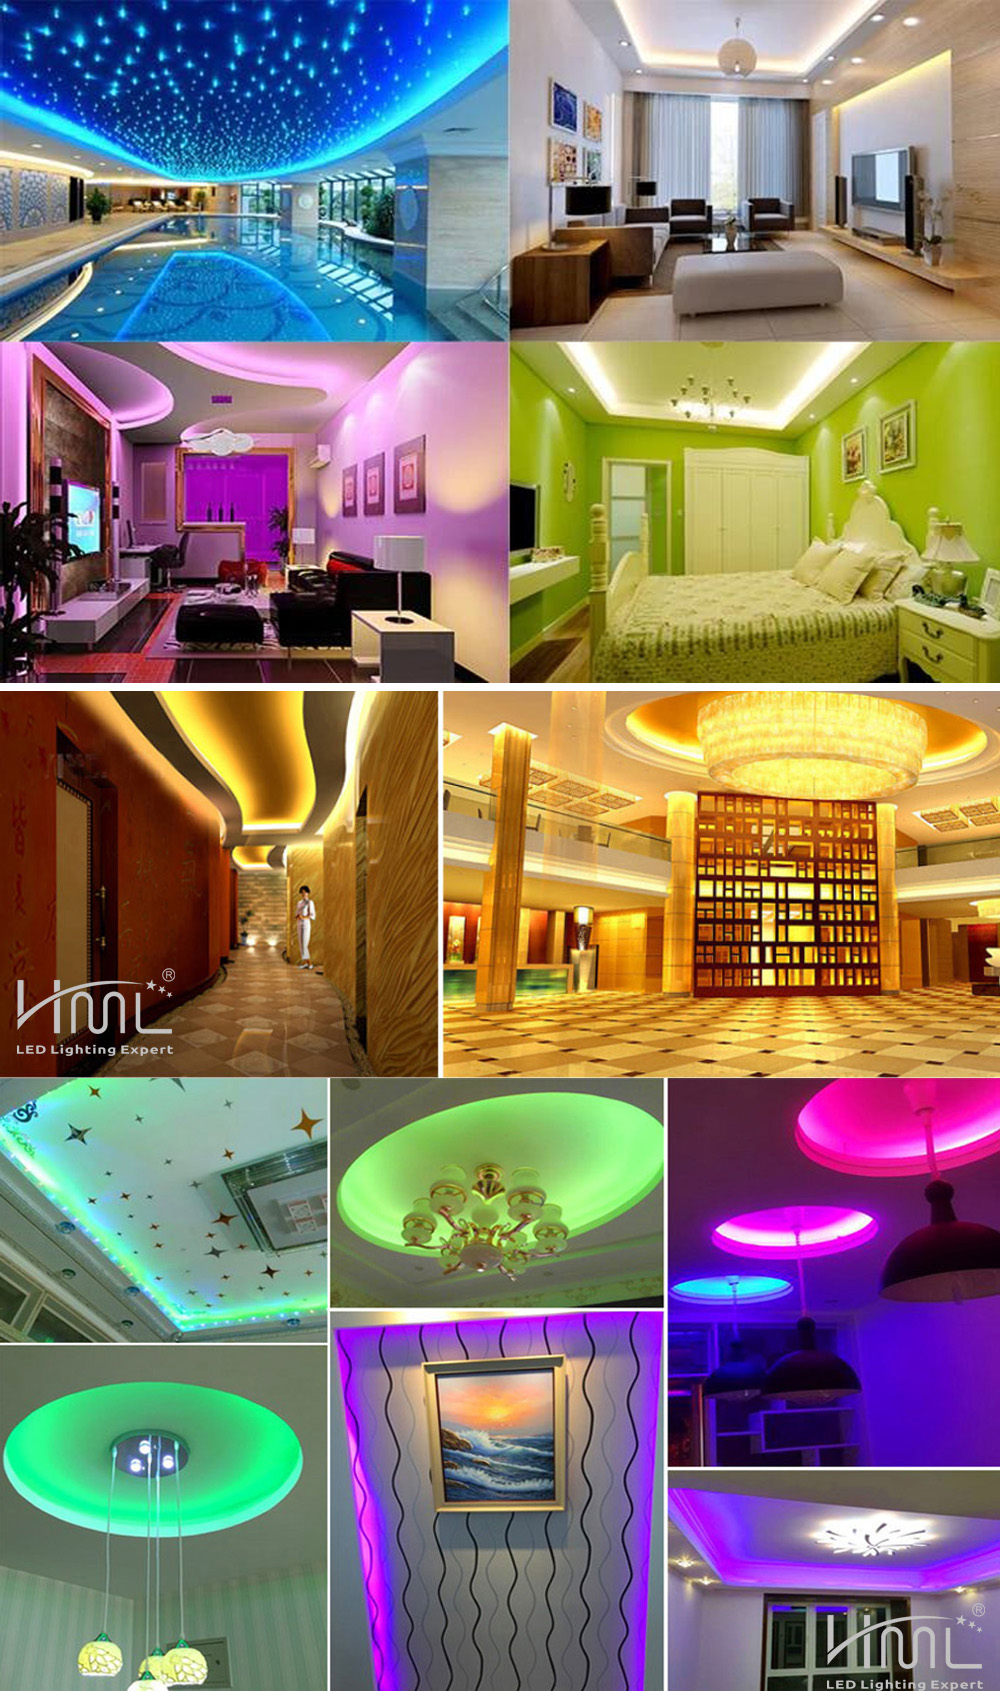 HML 5M Waterproof 72W 5050 RGB LED Strip Light with 24 Keys Remote Control And EU Adapter